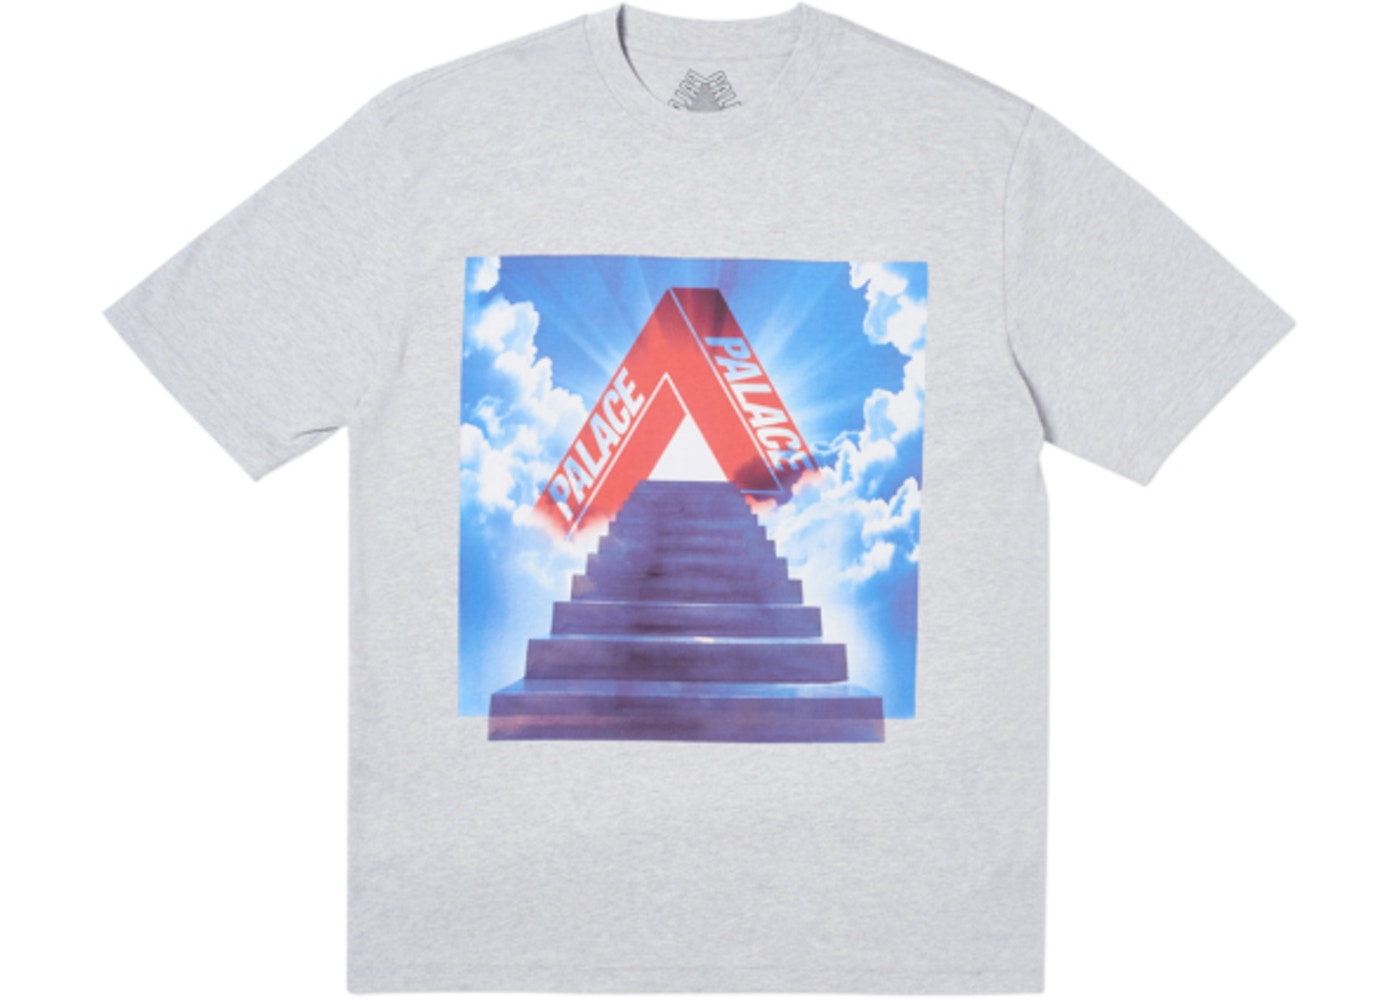 Palace Tri-Ternity T-Shirt Grey - CookiesandKicksLA